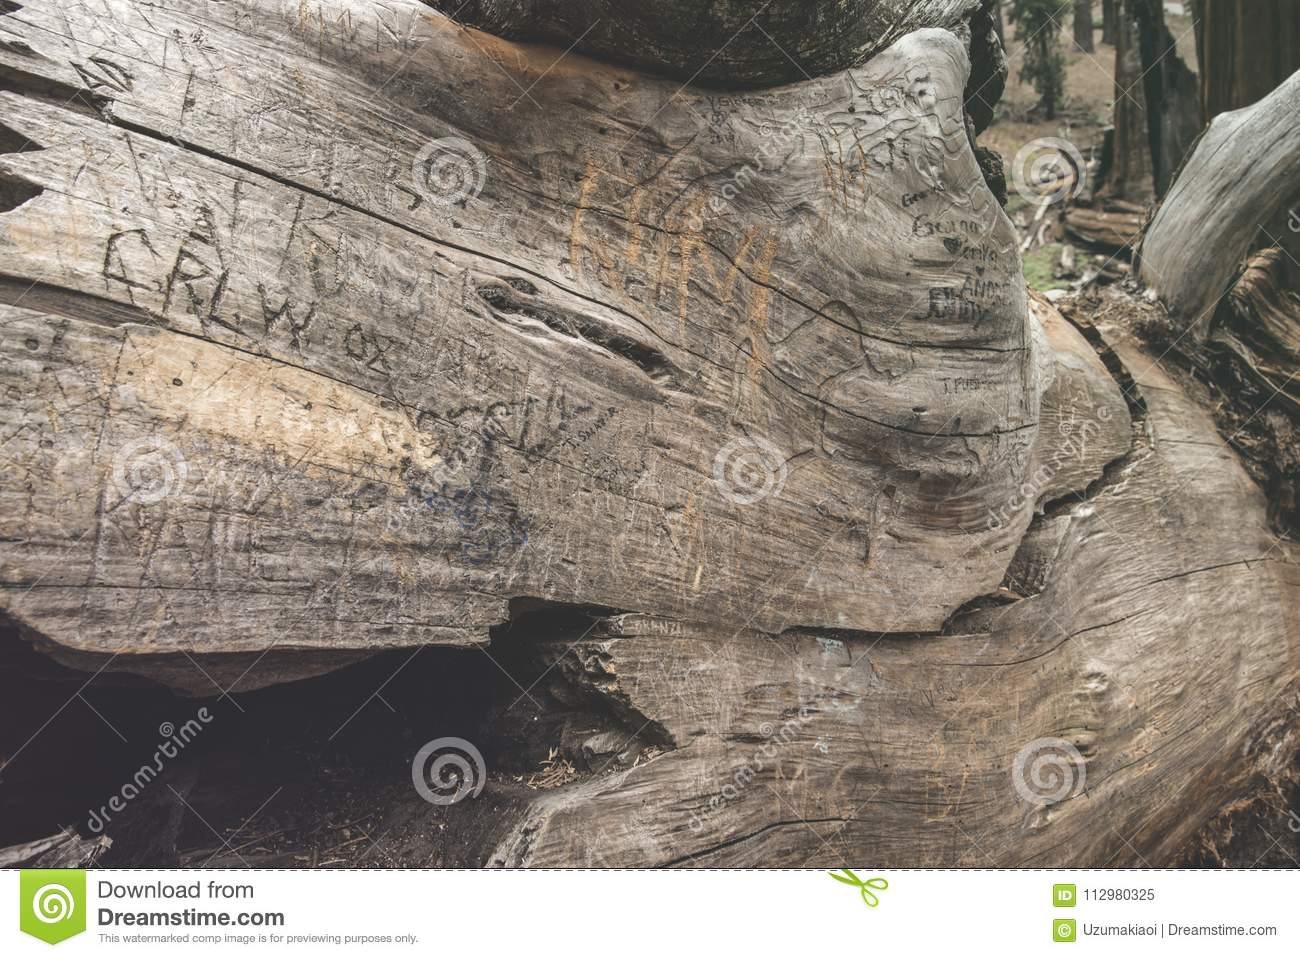 The bad habit traveler who visited the park scraped, write, carve or make any mark their name on the tree or stump